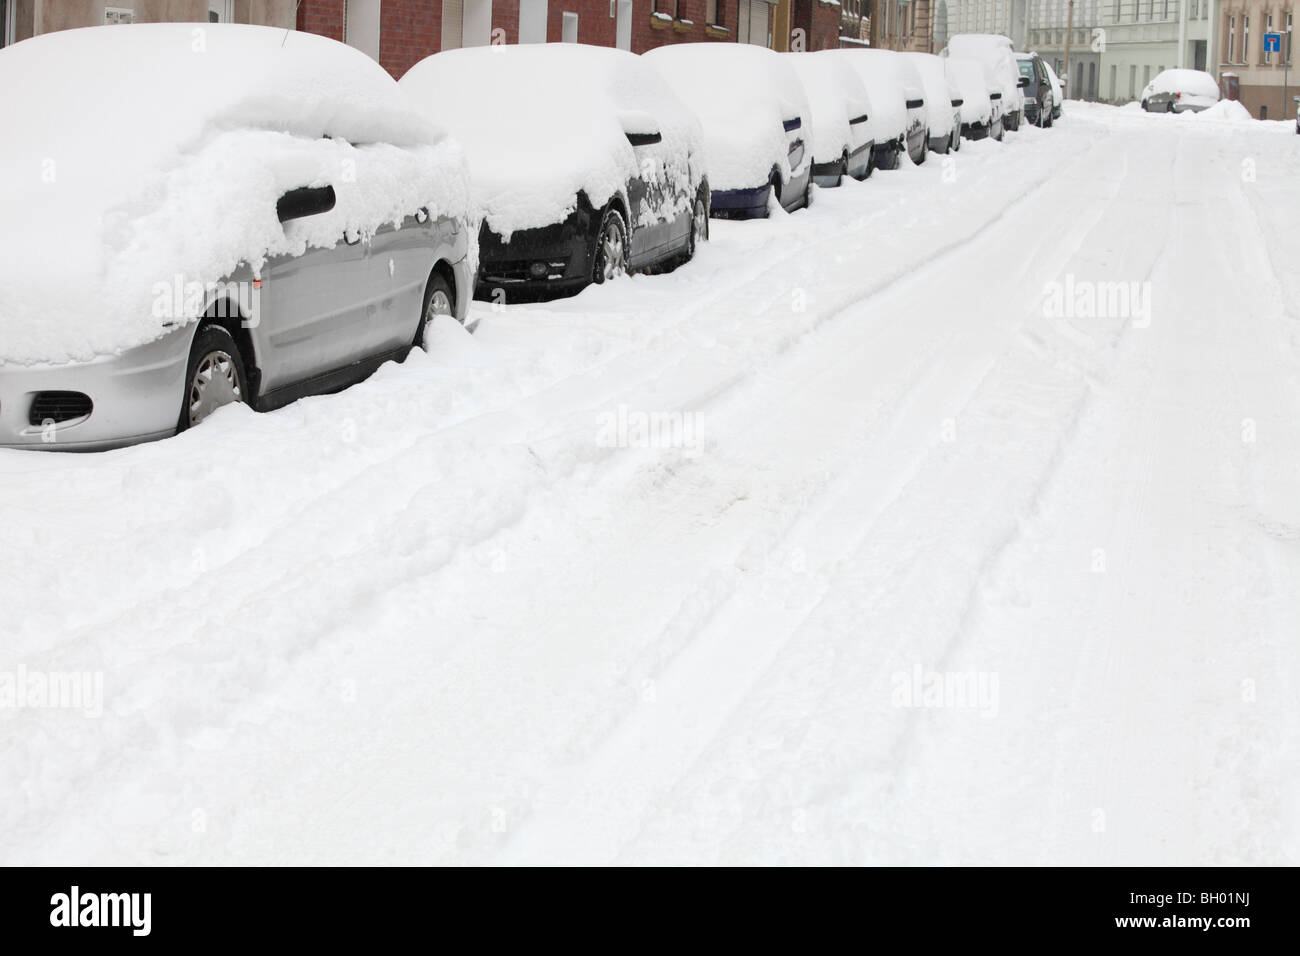 parked cars drowning in snow - Stock Image